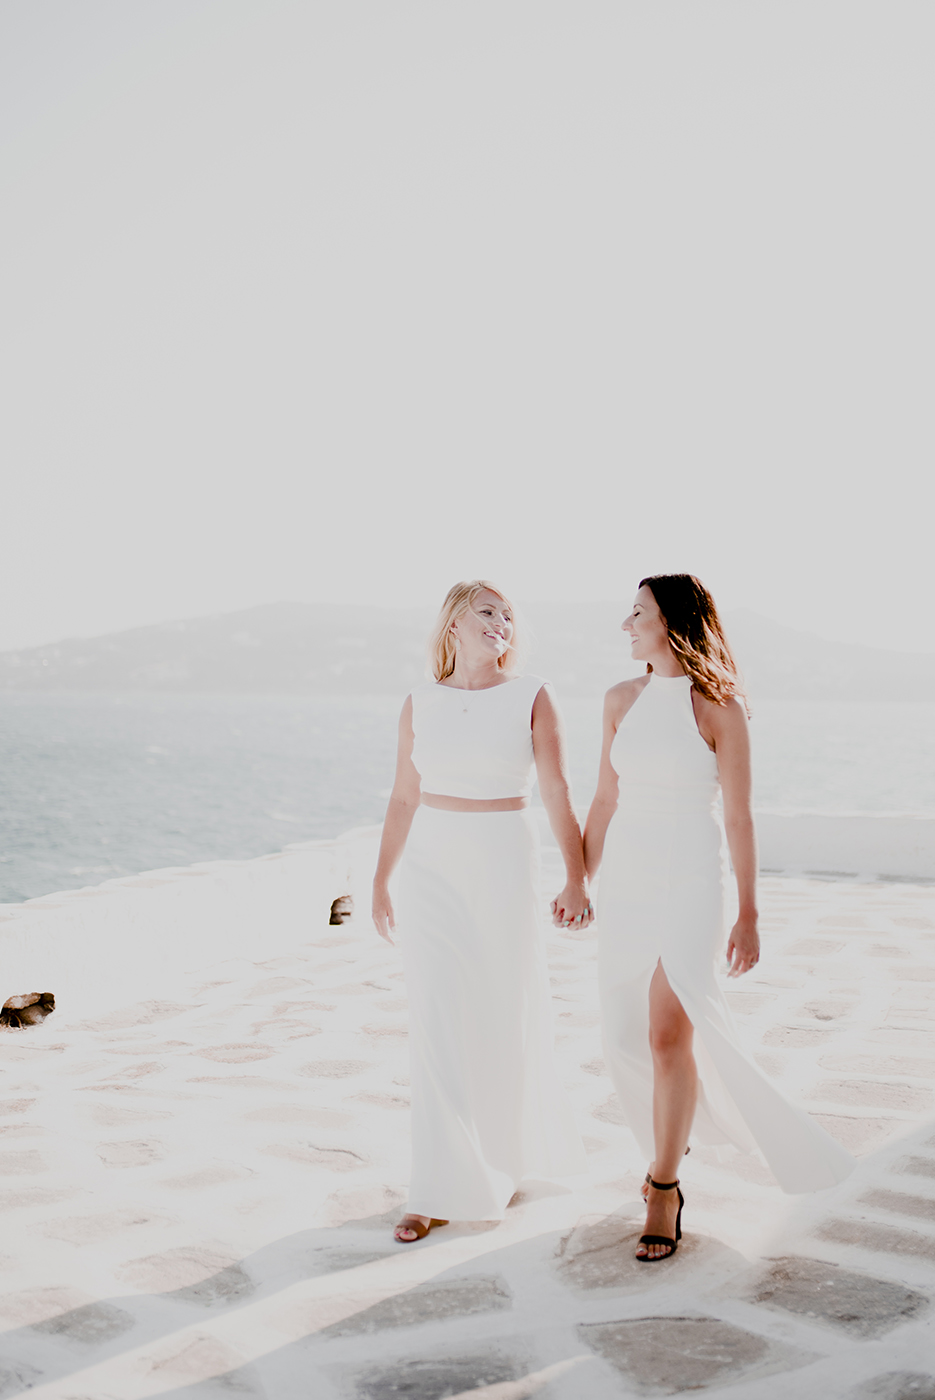 Kirill-Samarits-Wedding-Photography-Greece-AThens-Mykonos-Santorini-Same-Sex-Wedding-Photographer-Candice-Mykonos